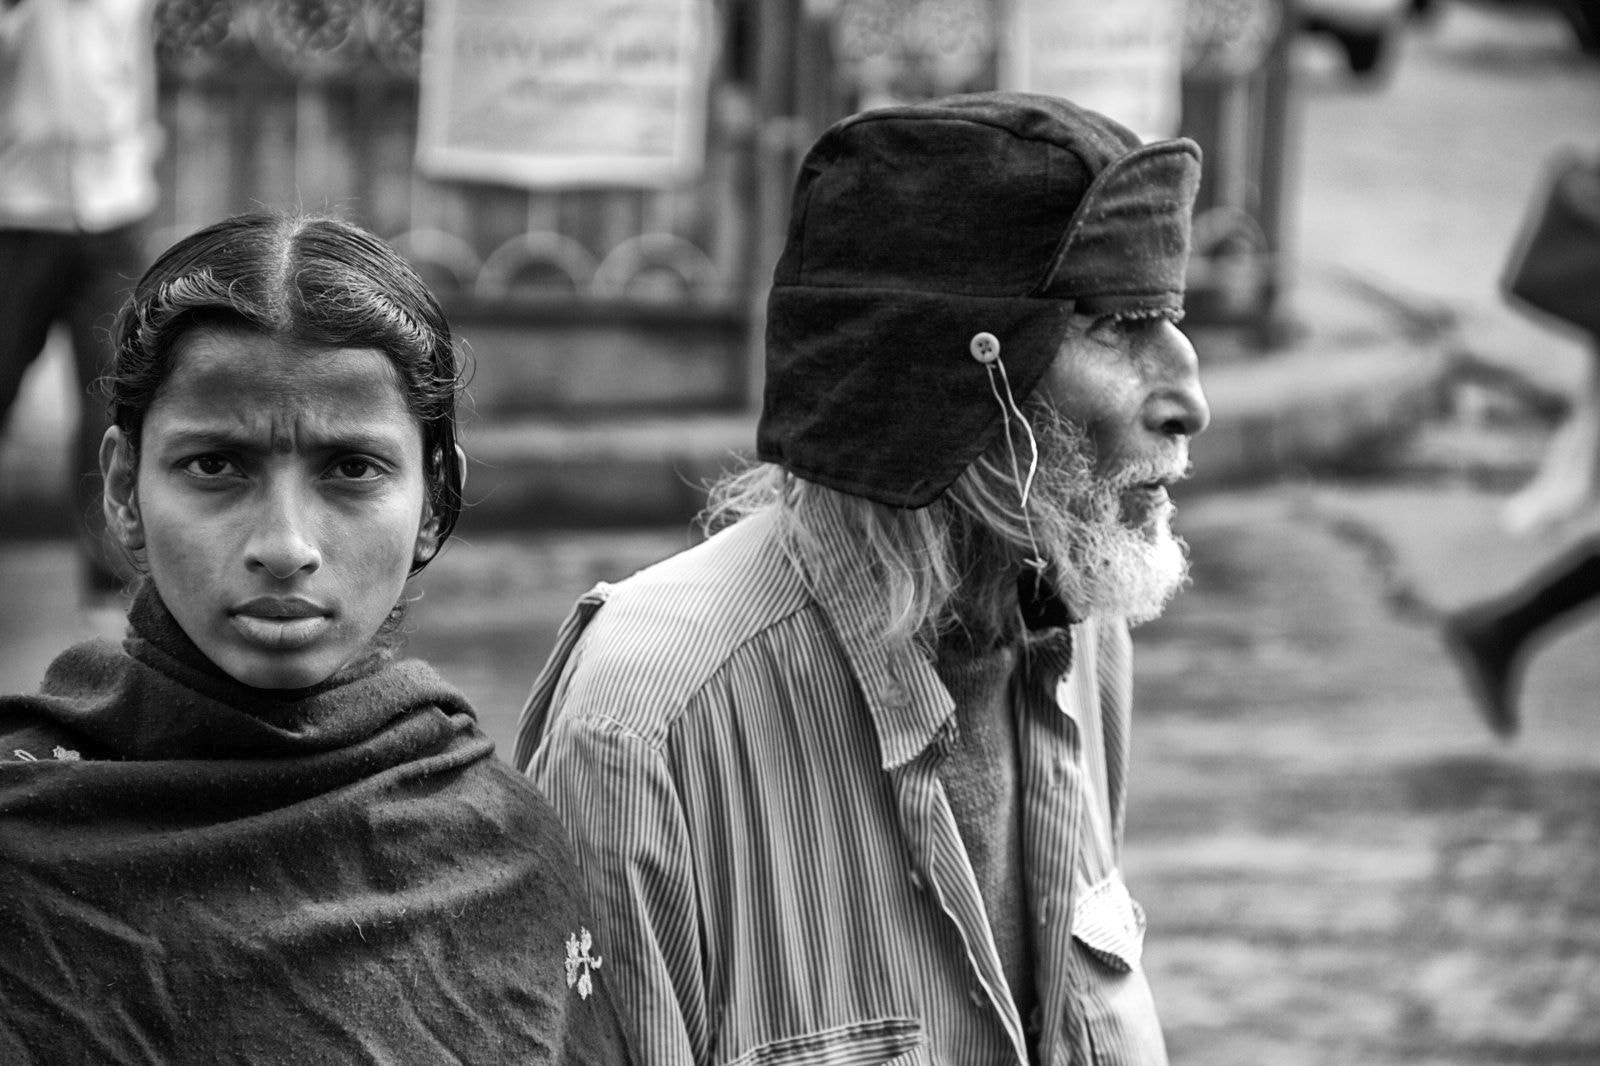 Photograph Streets of Kolkata by Georgie Pauwels on 500px